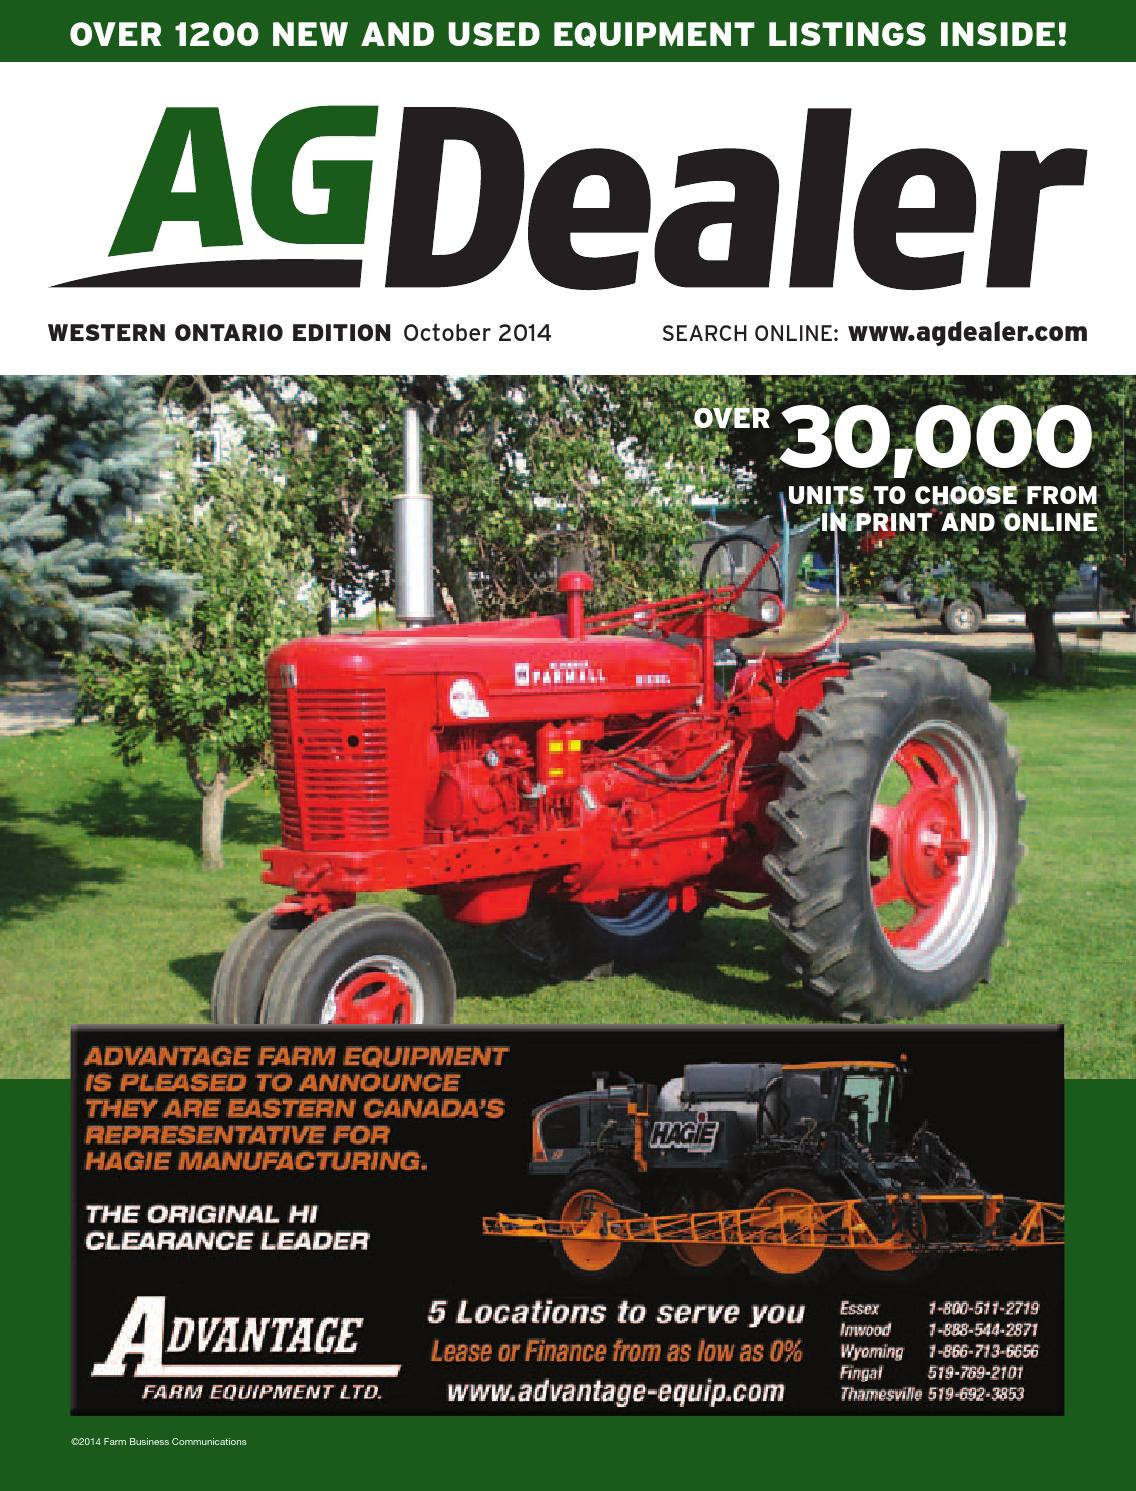 AGDealer Western Ontario Edition, October 2014 by Farm Business  Communications - issuu